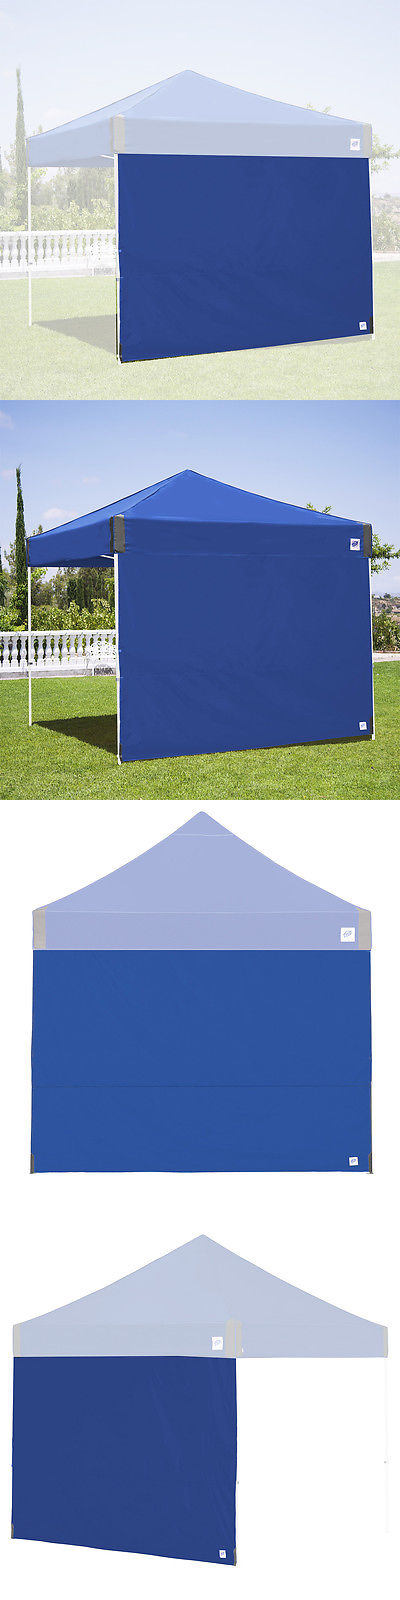 Tent and Canopy Accessories 36120 E-Z Up Sw3rb10slgy 10-Foot Fabric Straight Leg Shelter & Tent and Canopy Accessories 36120: E-Z Up Sw3rb10slgy 10-Foot ...